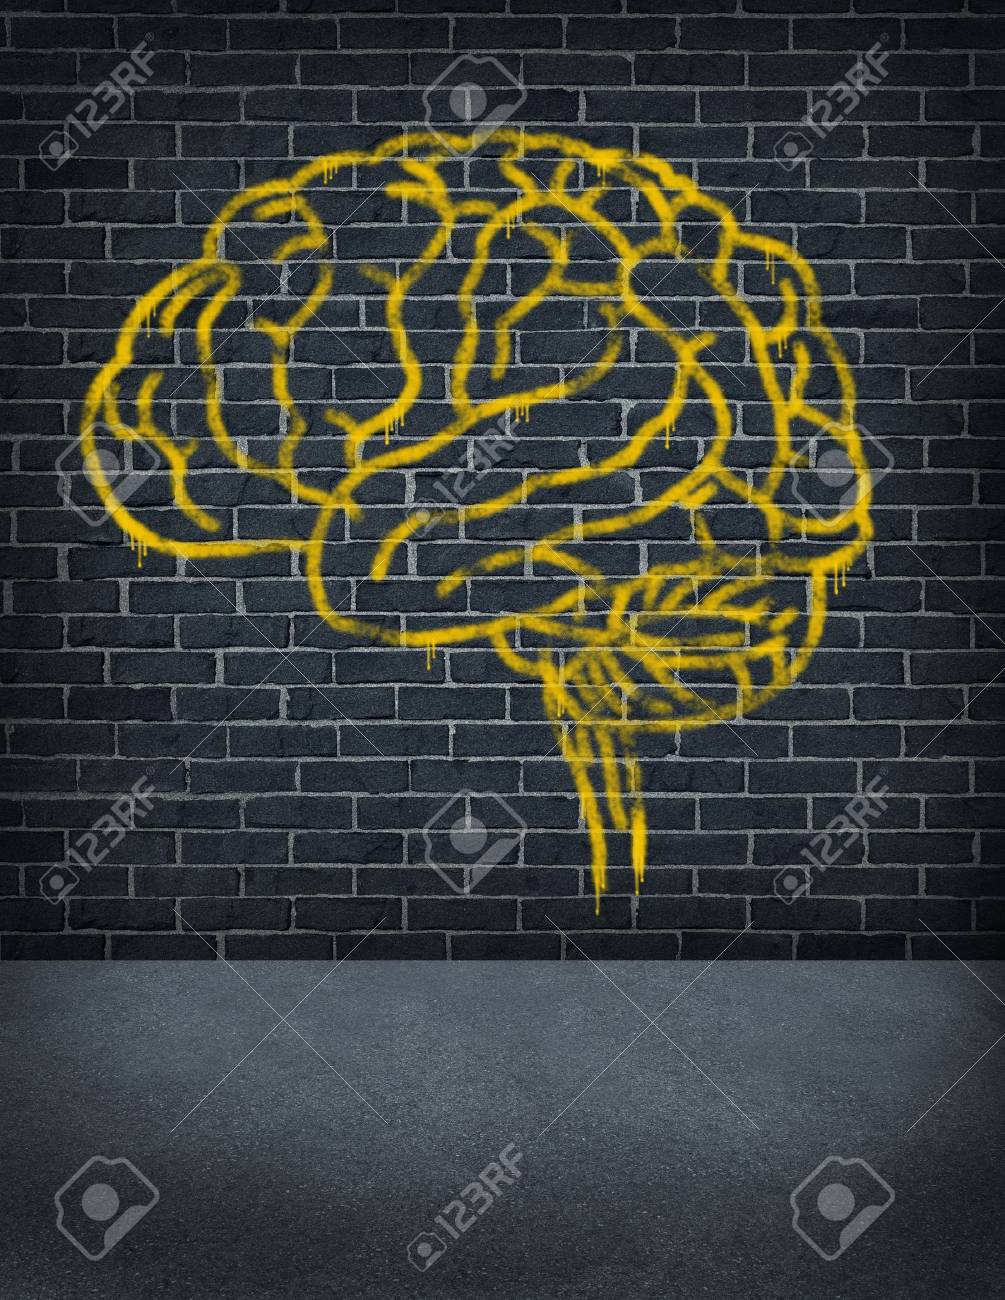 Criminal mind with a sprayed graffiti painting of a human brain on an old outdoor street brick wall as a health care and legal symbol of criminal behavior and problems in social behavior Stock Photo - 15206275